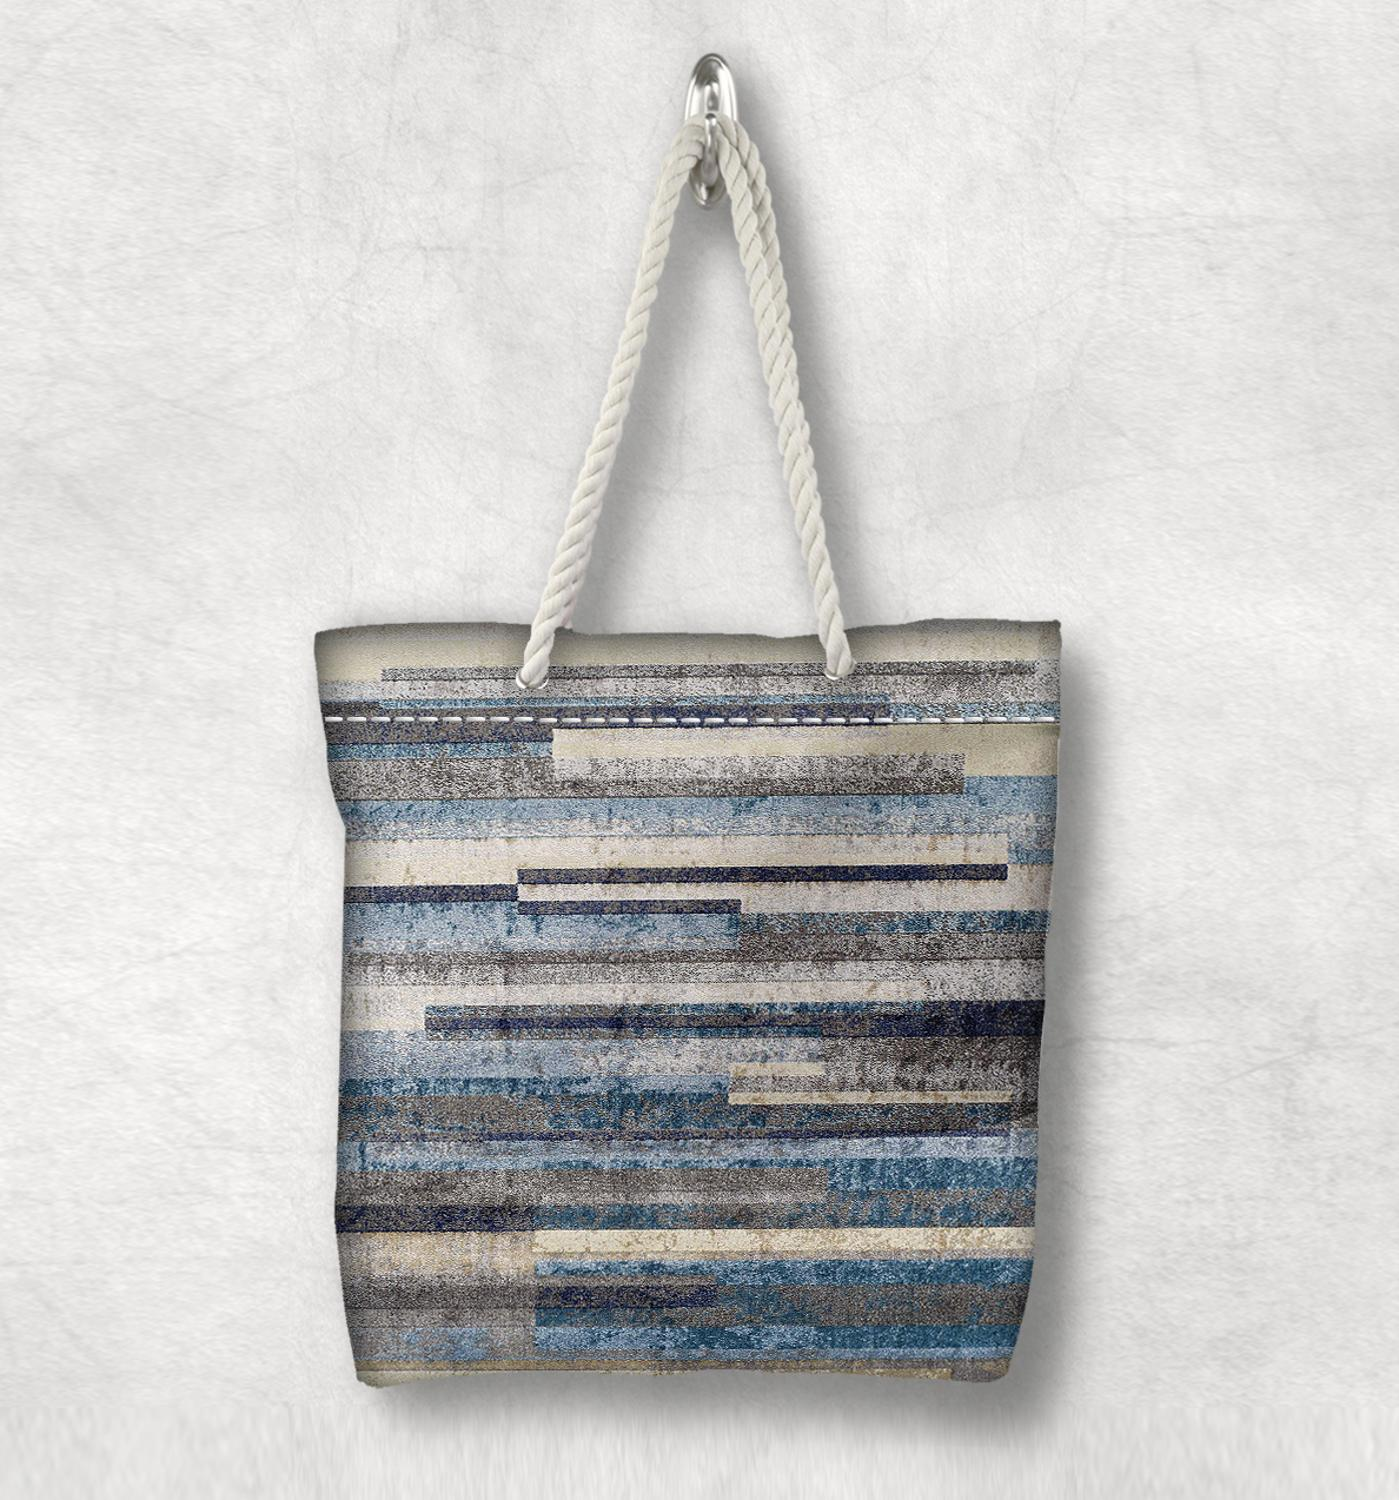 Else Blue Brown Lines Watercolor Anatolia Antique  White Rope Handle Canvas Bag Cotton Canvas Zippered Tote Bag Shoulder Bag